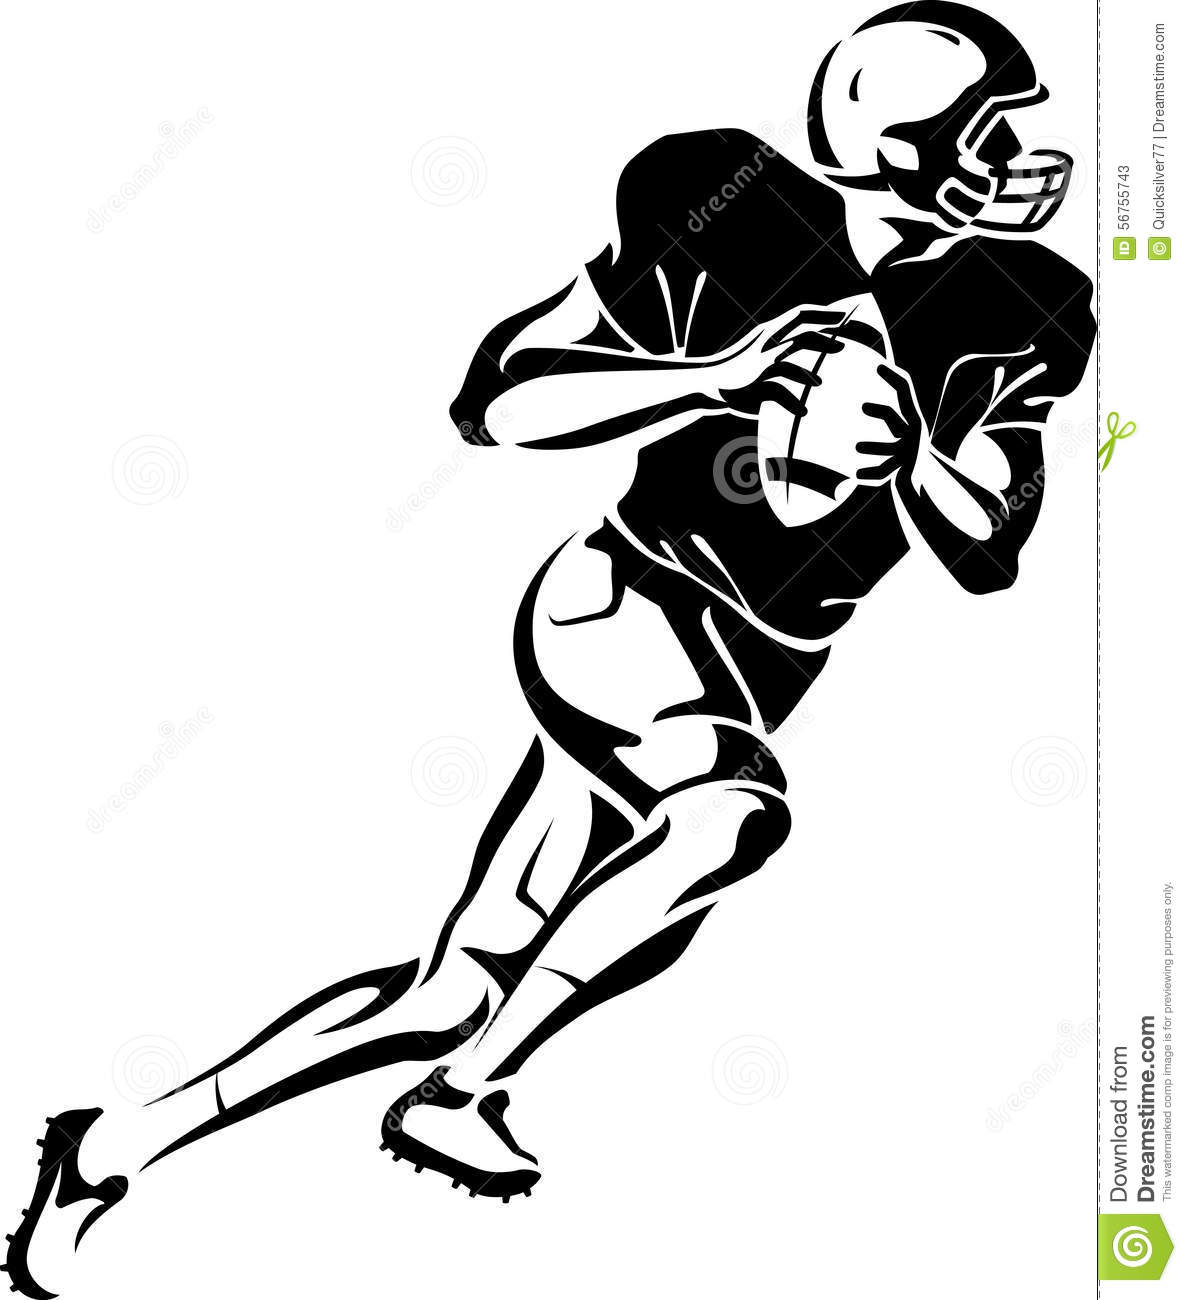 Quarterback Football Player Stock Vector